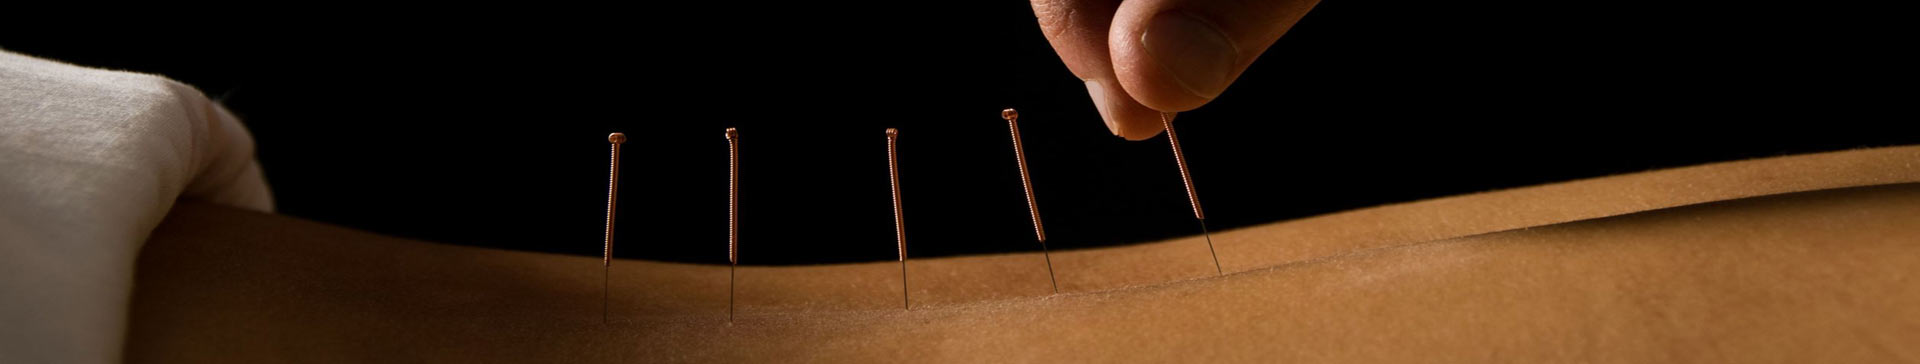 Acupuncture, headaches, back pain